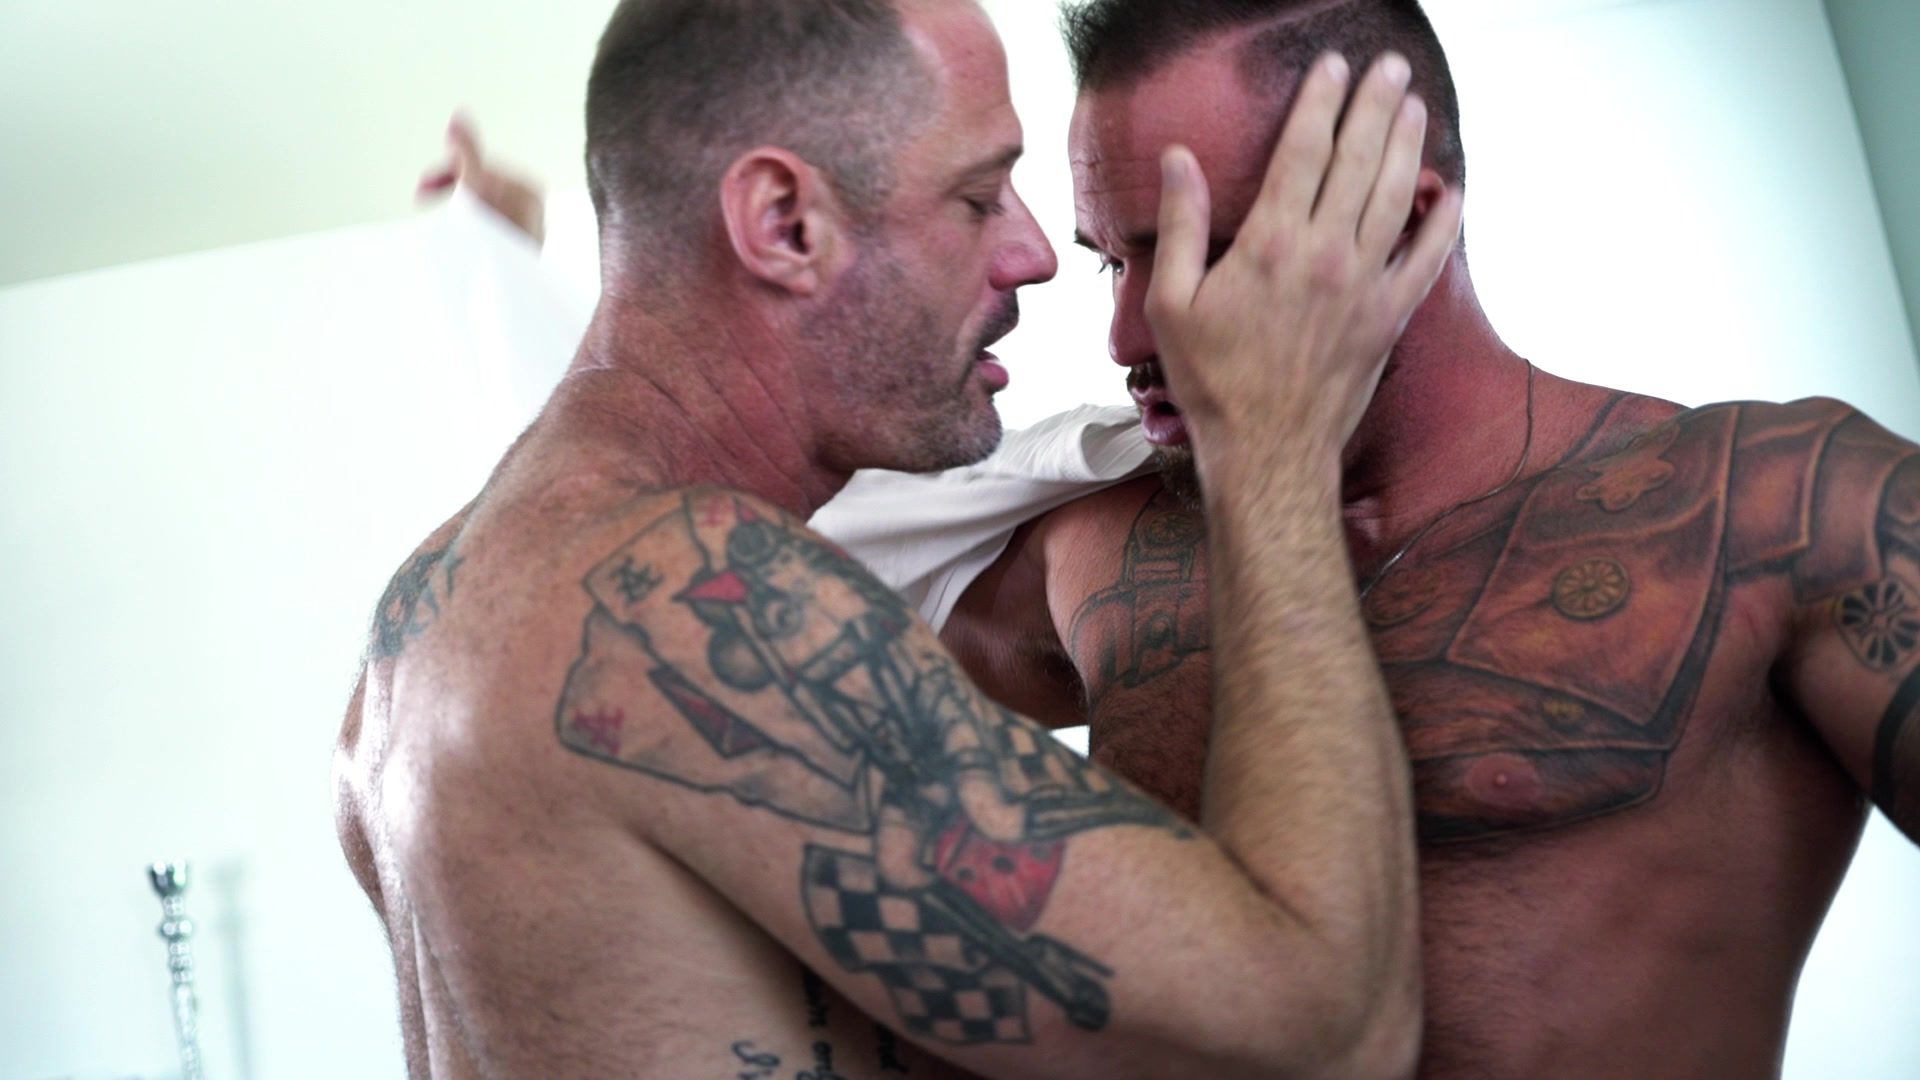 New chris salvatore eating out the open weekend gay themed comedy blu ray picture